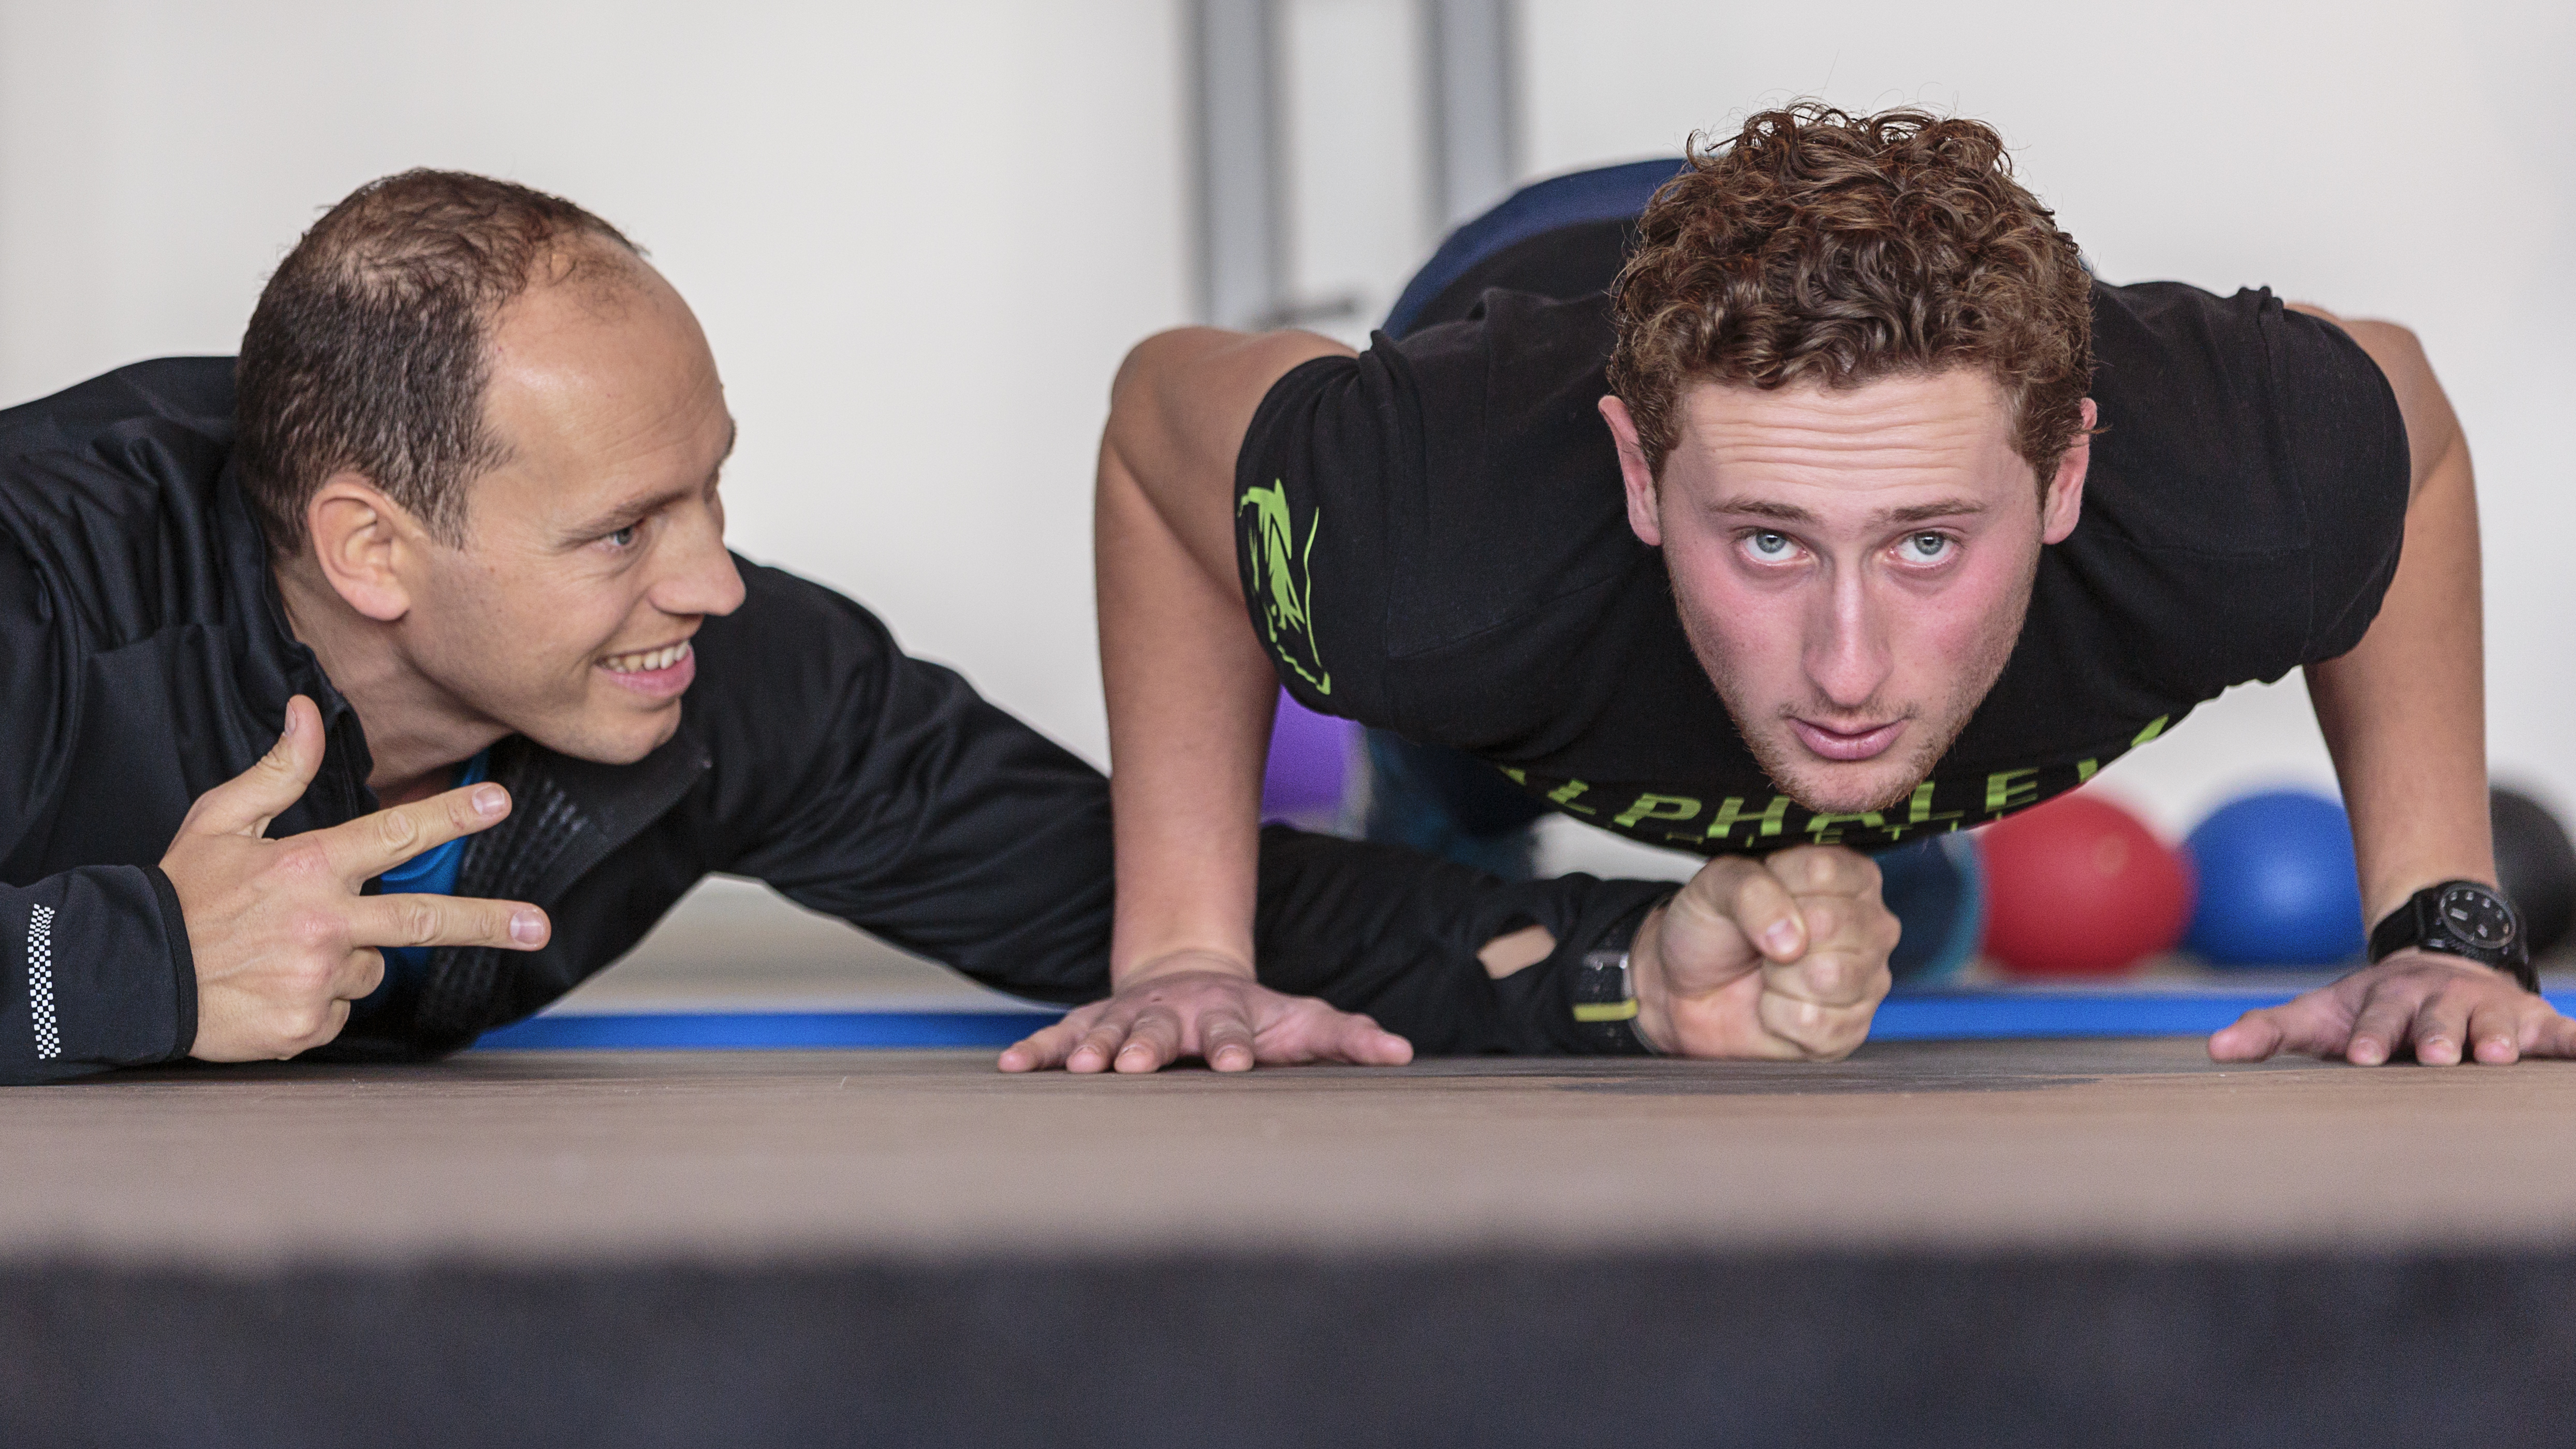 Military Fit, Gino Pasutto, personal trainer in Scheveningen is de expert